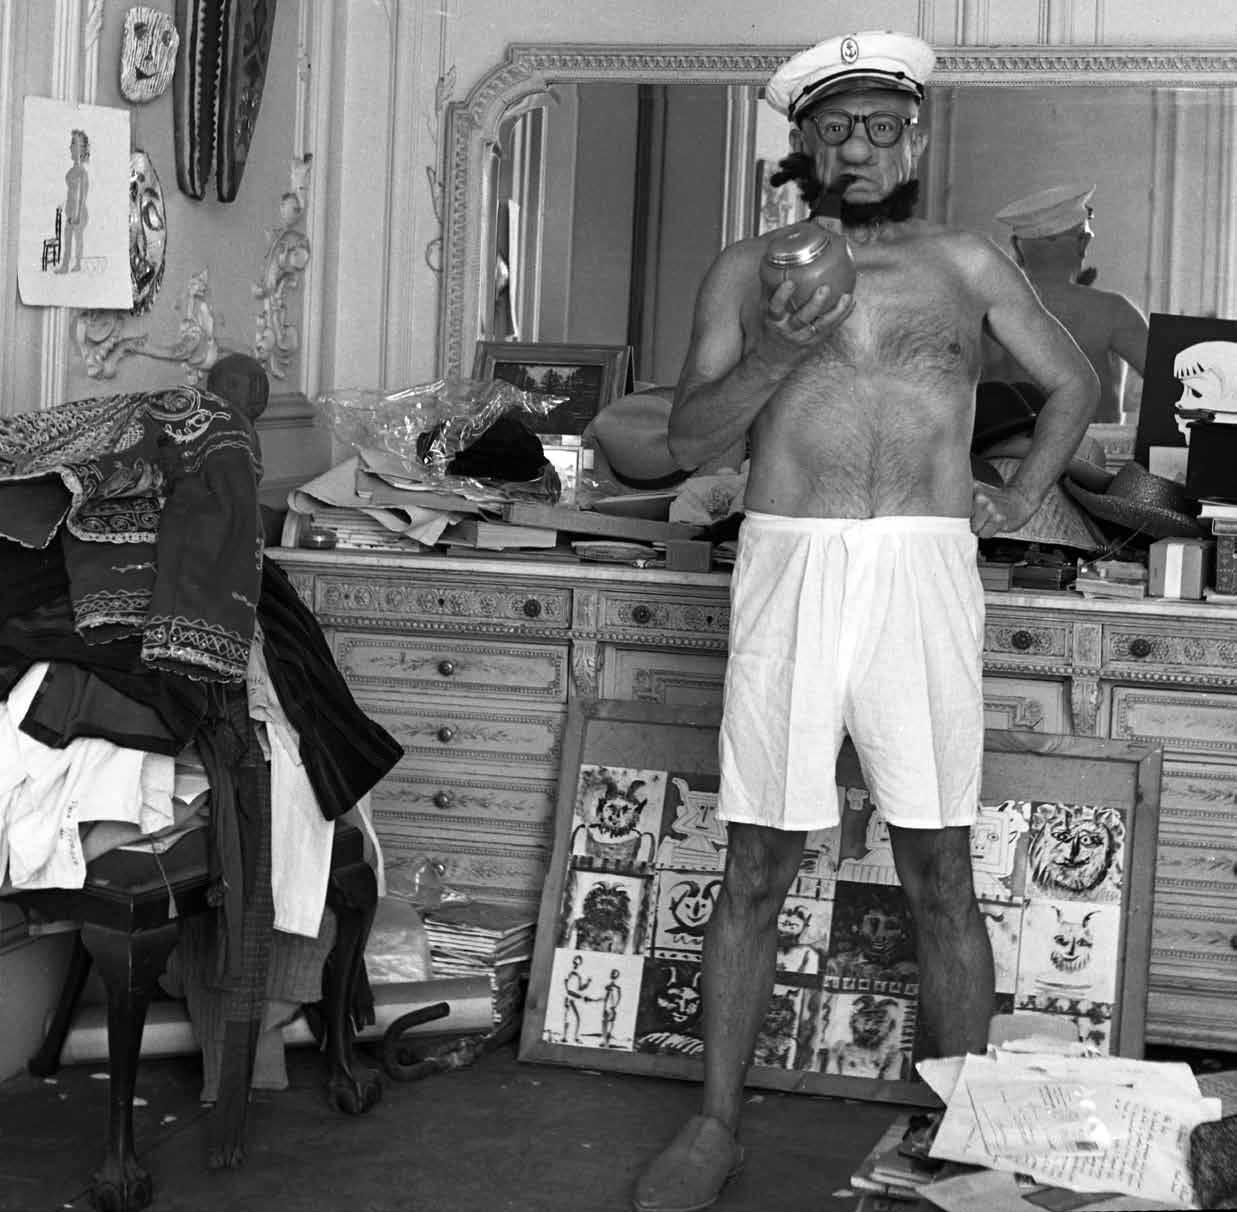 L'artista spagnolo Pablo Picasso nei panni di Popeye (da noi Braccio di Ferro), in una foto scattata a Cannes da André Villers nel 1957. Picasso Popeye André Villers Cannes art cult stories cubisme Spain cultstories.altervista.org cult stories cultstories cinema cult story cultstory art culture music ipse dixit aneddoti citazioni frasi famose aforismi immagini foto personaggi cultura musica storie facts fatti celebrità vip cult spettacoli live performance concerto photo photography celebrity giornalismo scrittura libri genio pop icon attore cantante solista pittrice scultore attrice star diva sex symbol mito